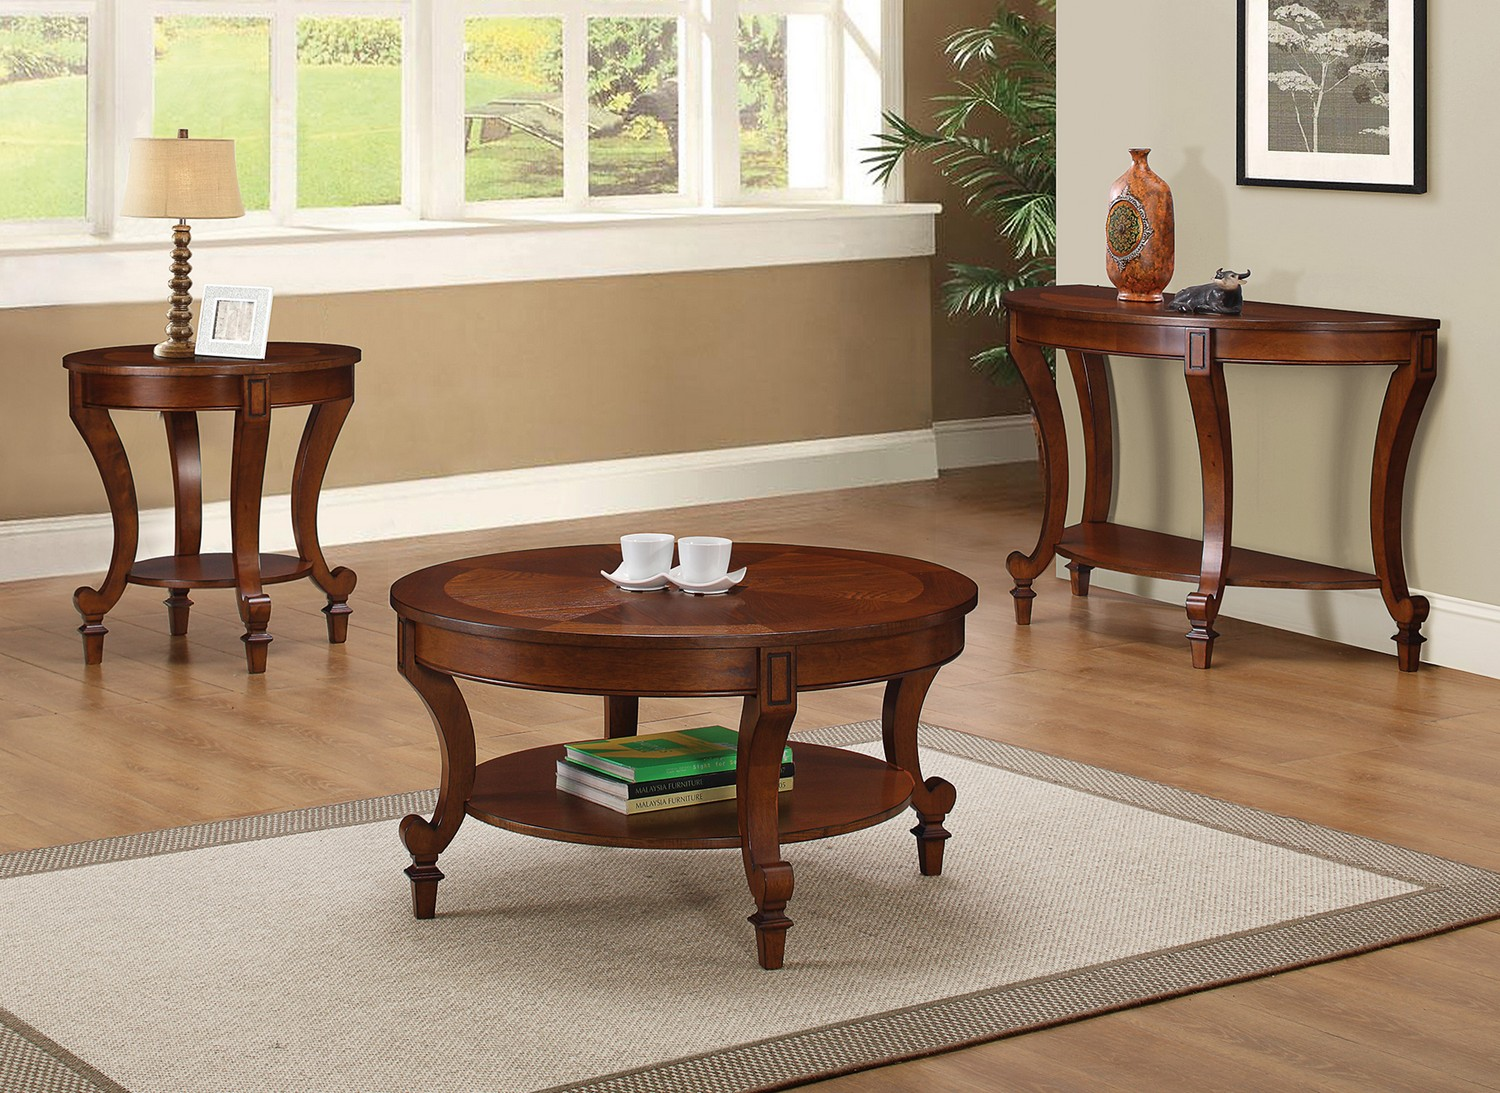 Coaster 704408 Coffee/Cocktail Table Set - Warm Brown